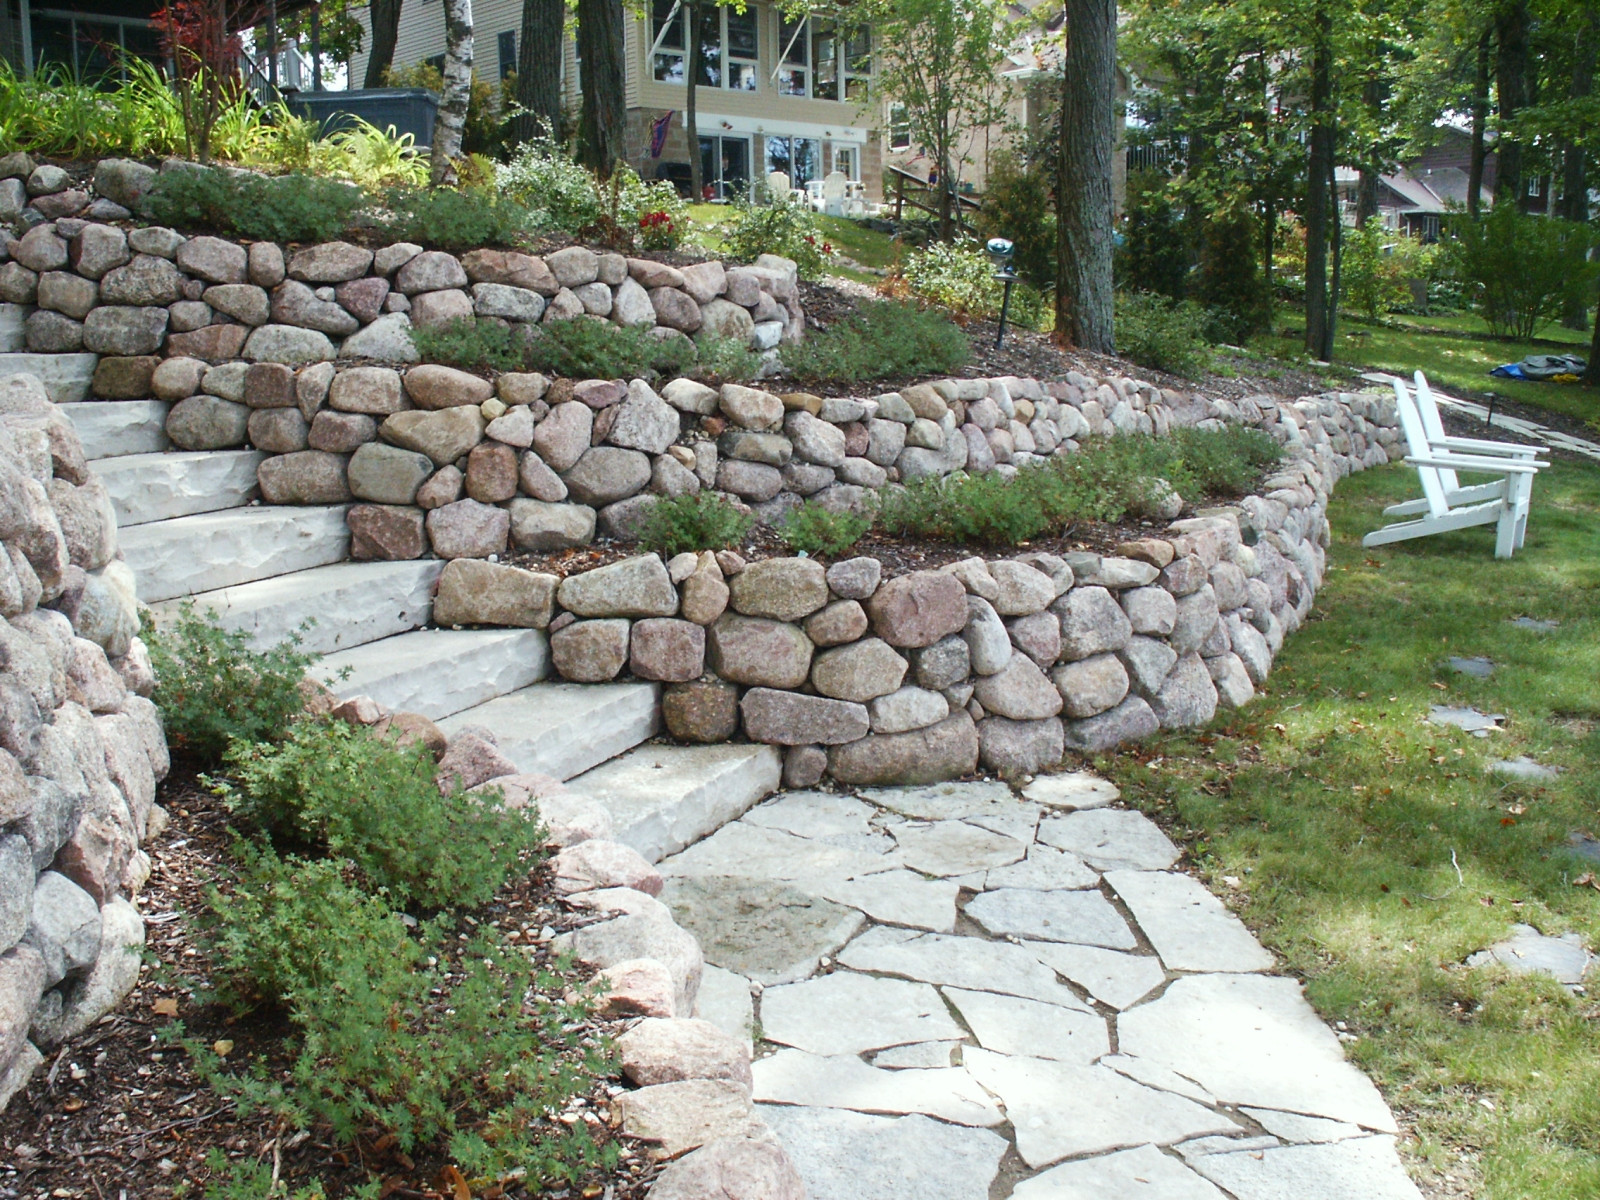 Terras Stenen Retaining Walls And Outcroppings Treetops Landscape